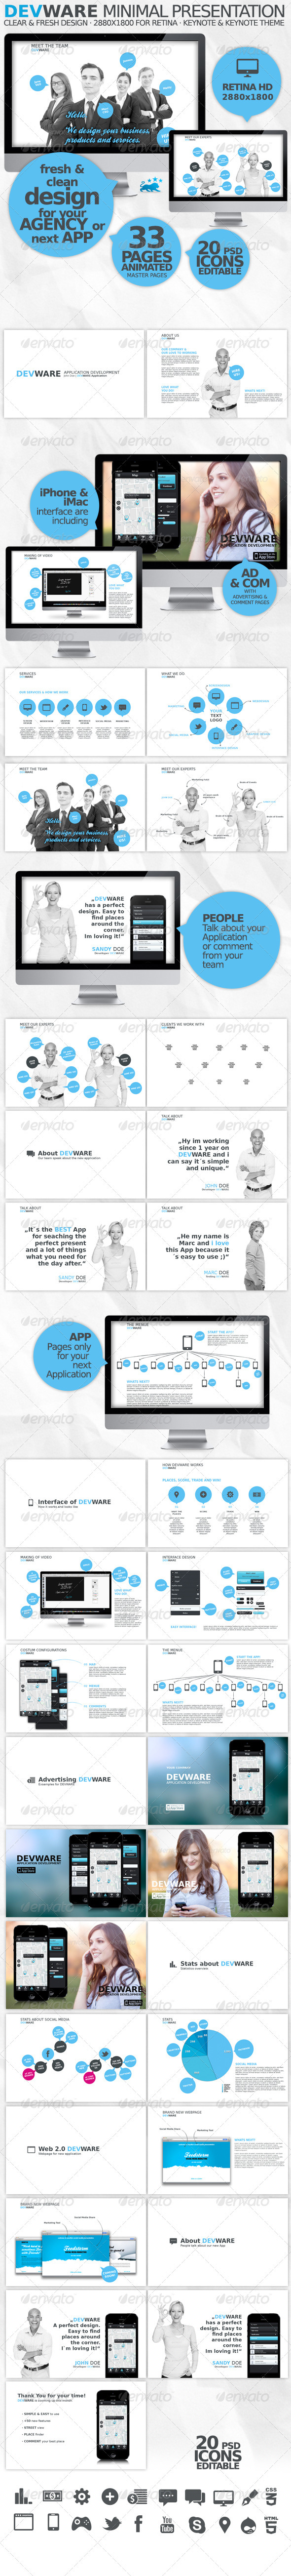 GraphicRiver DEVWARE 33 Pages Keynote Presentation 3897193